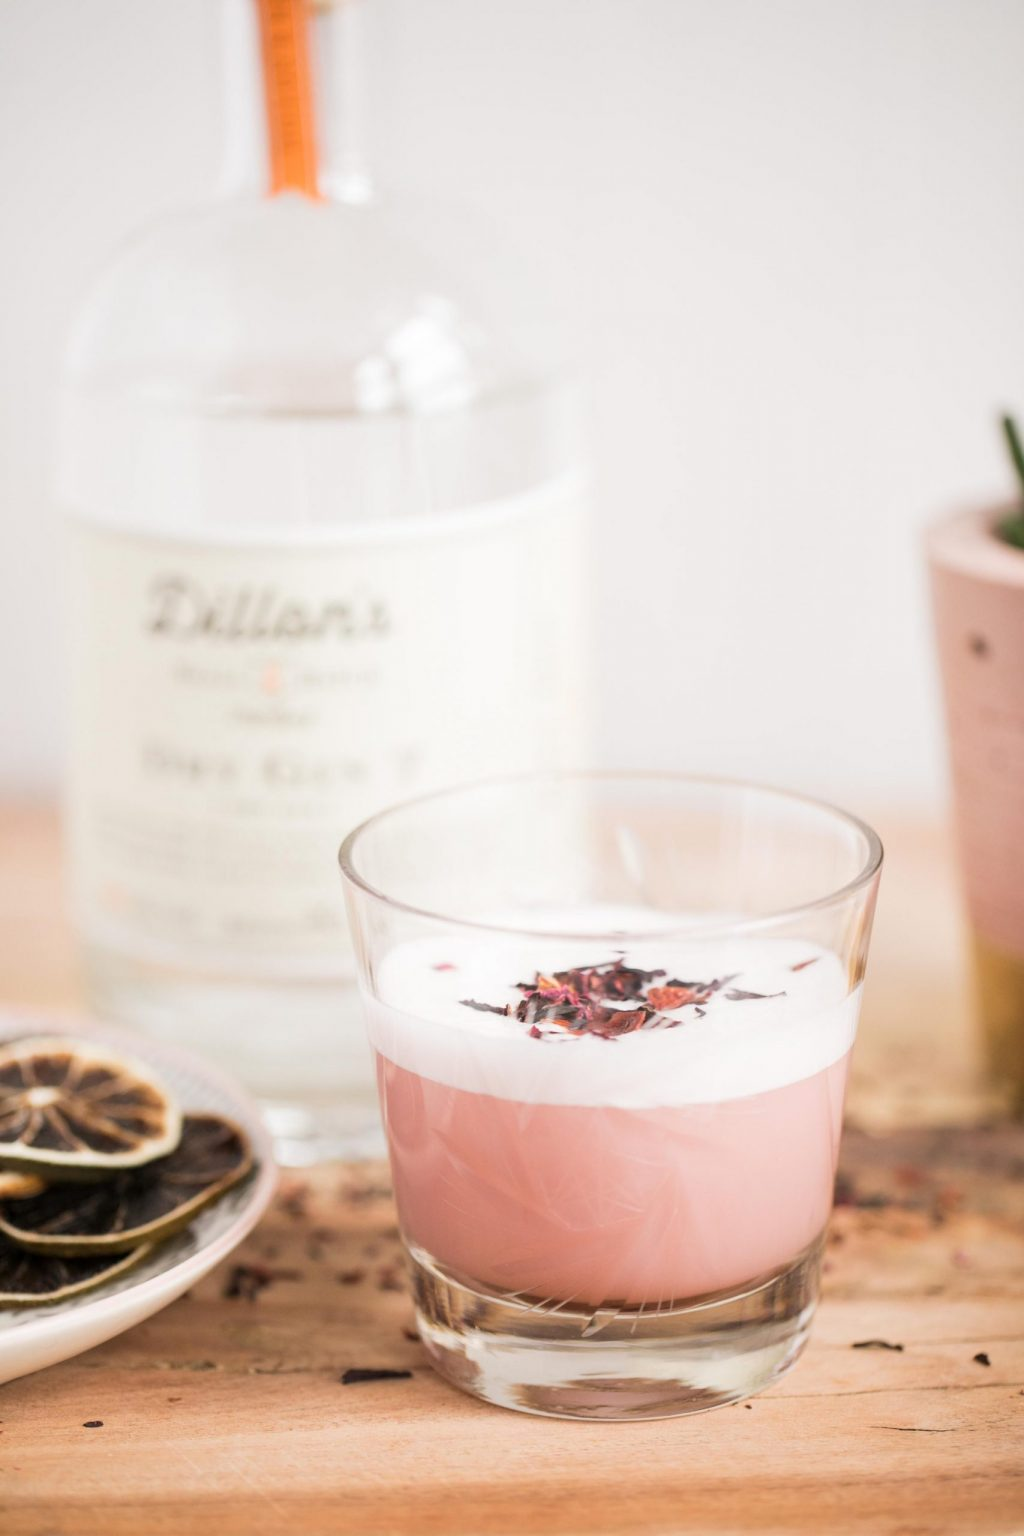 dillons hibiscus sour